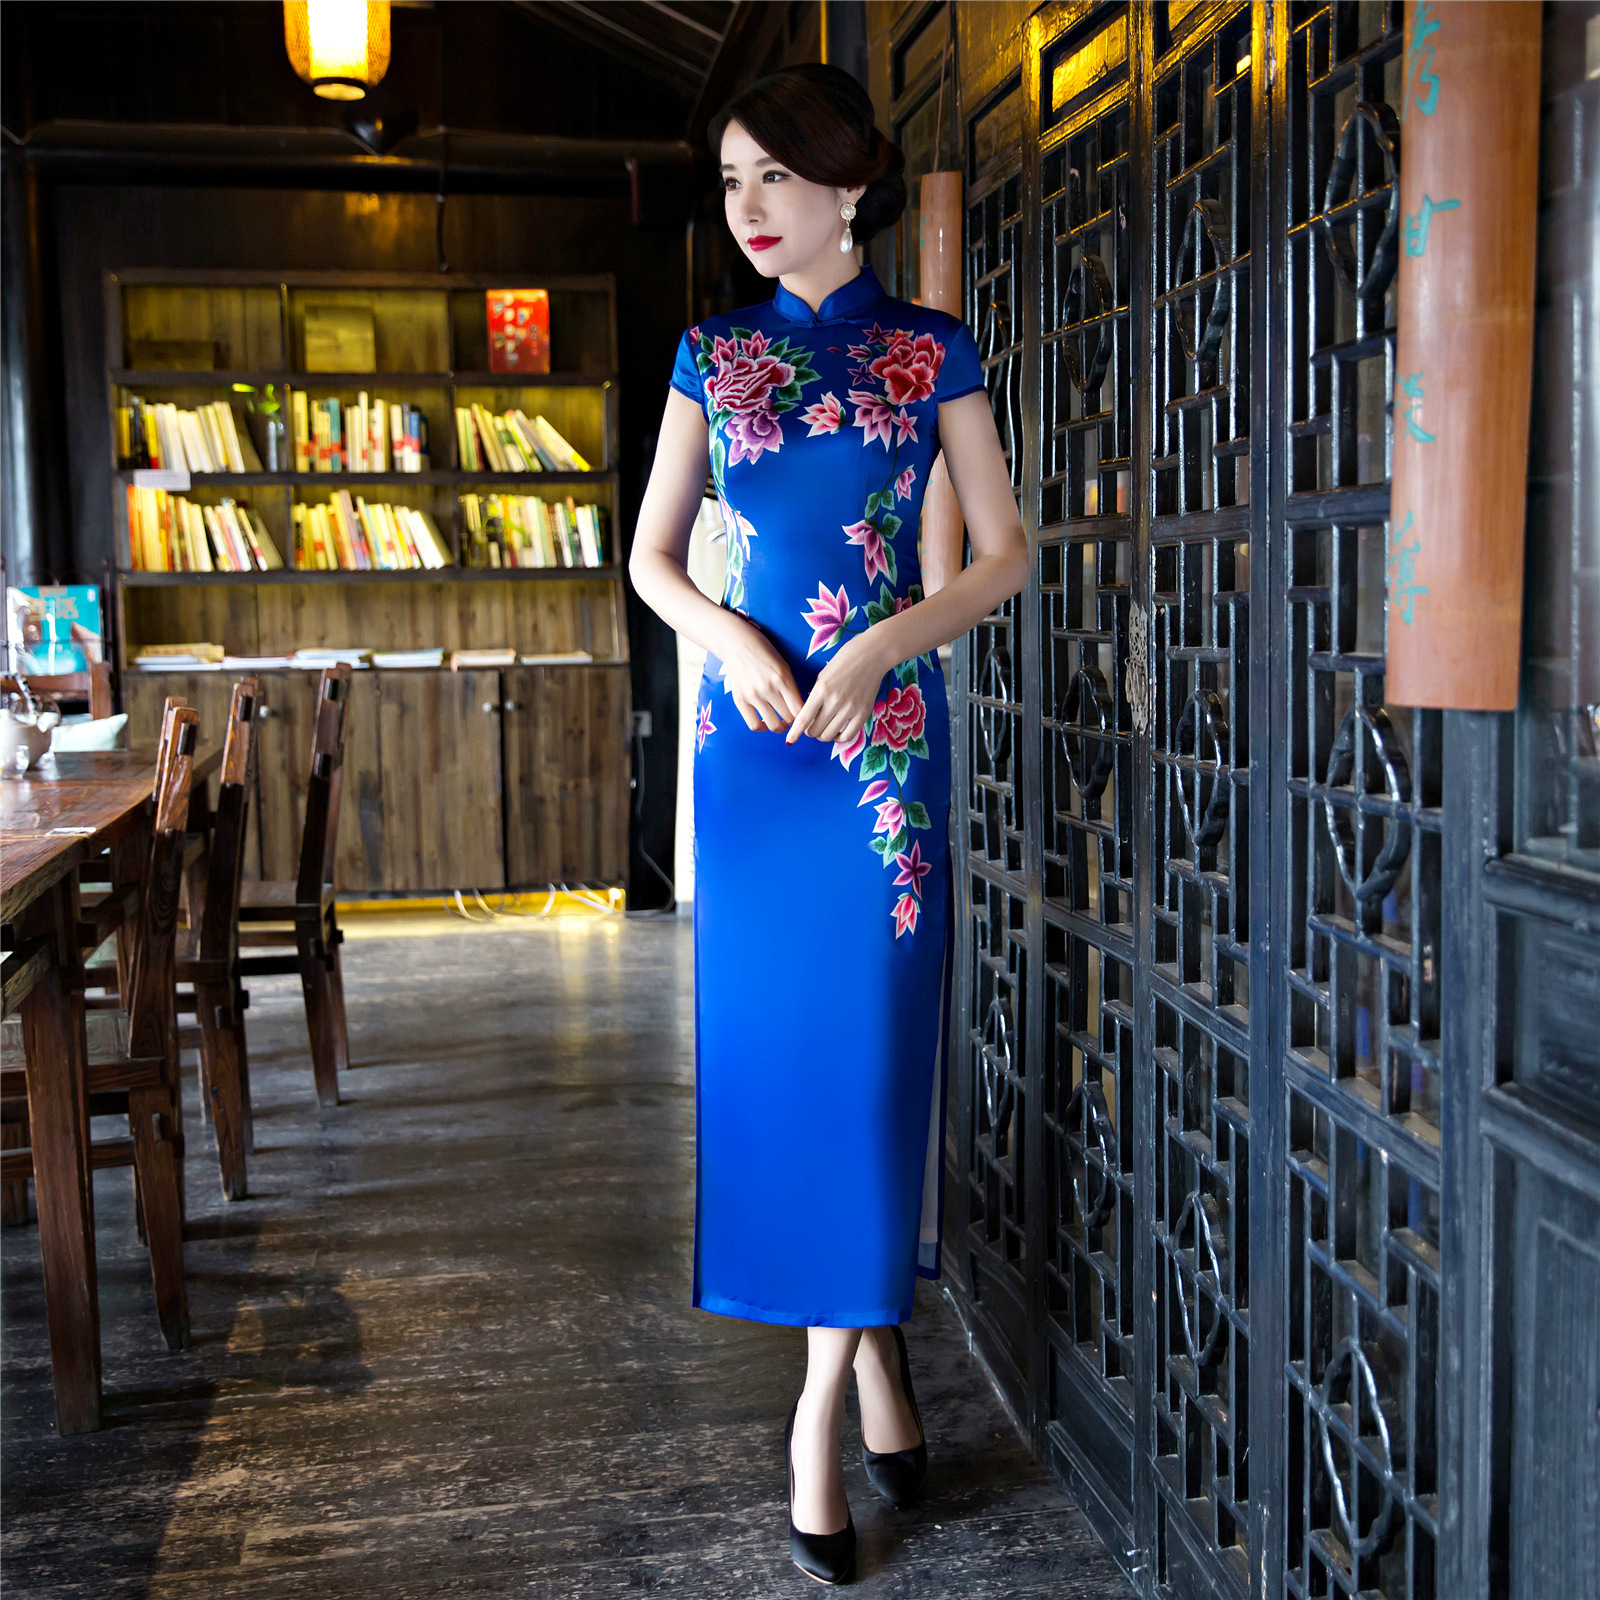 women long qipao long sleeve traditional chinese dress plus size red blue  silk with embroidery cotton cheongsam dress-in Cheongsams from Novelty    Special ... eec8c0b09abe